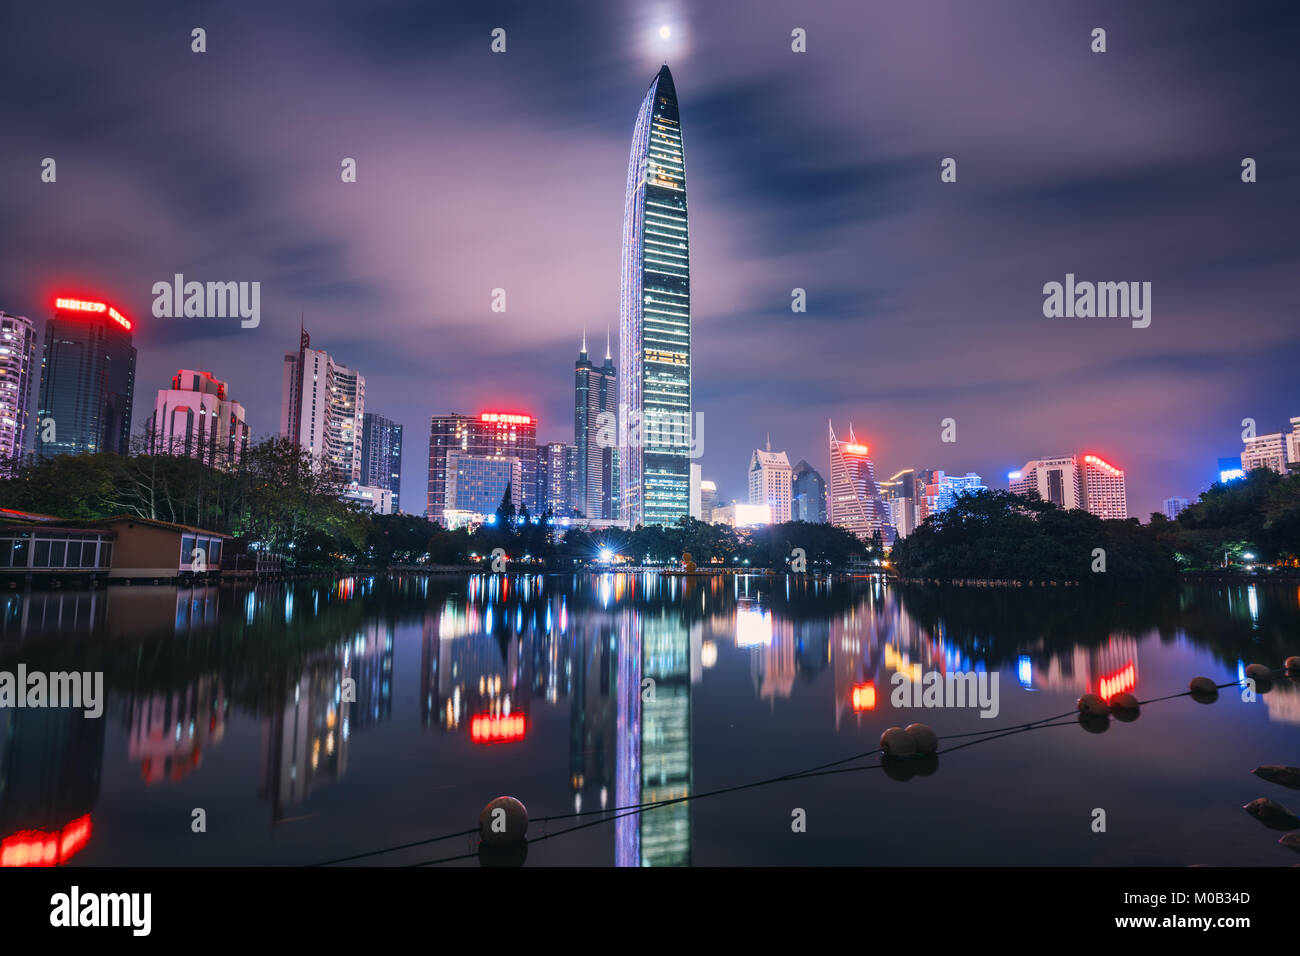 view on skyscraper Kingkey 100 from Lici park, Shenzhen, China - Stock Image